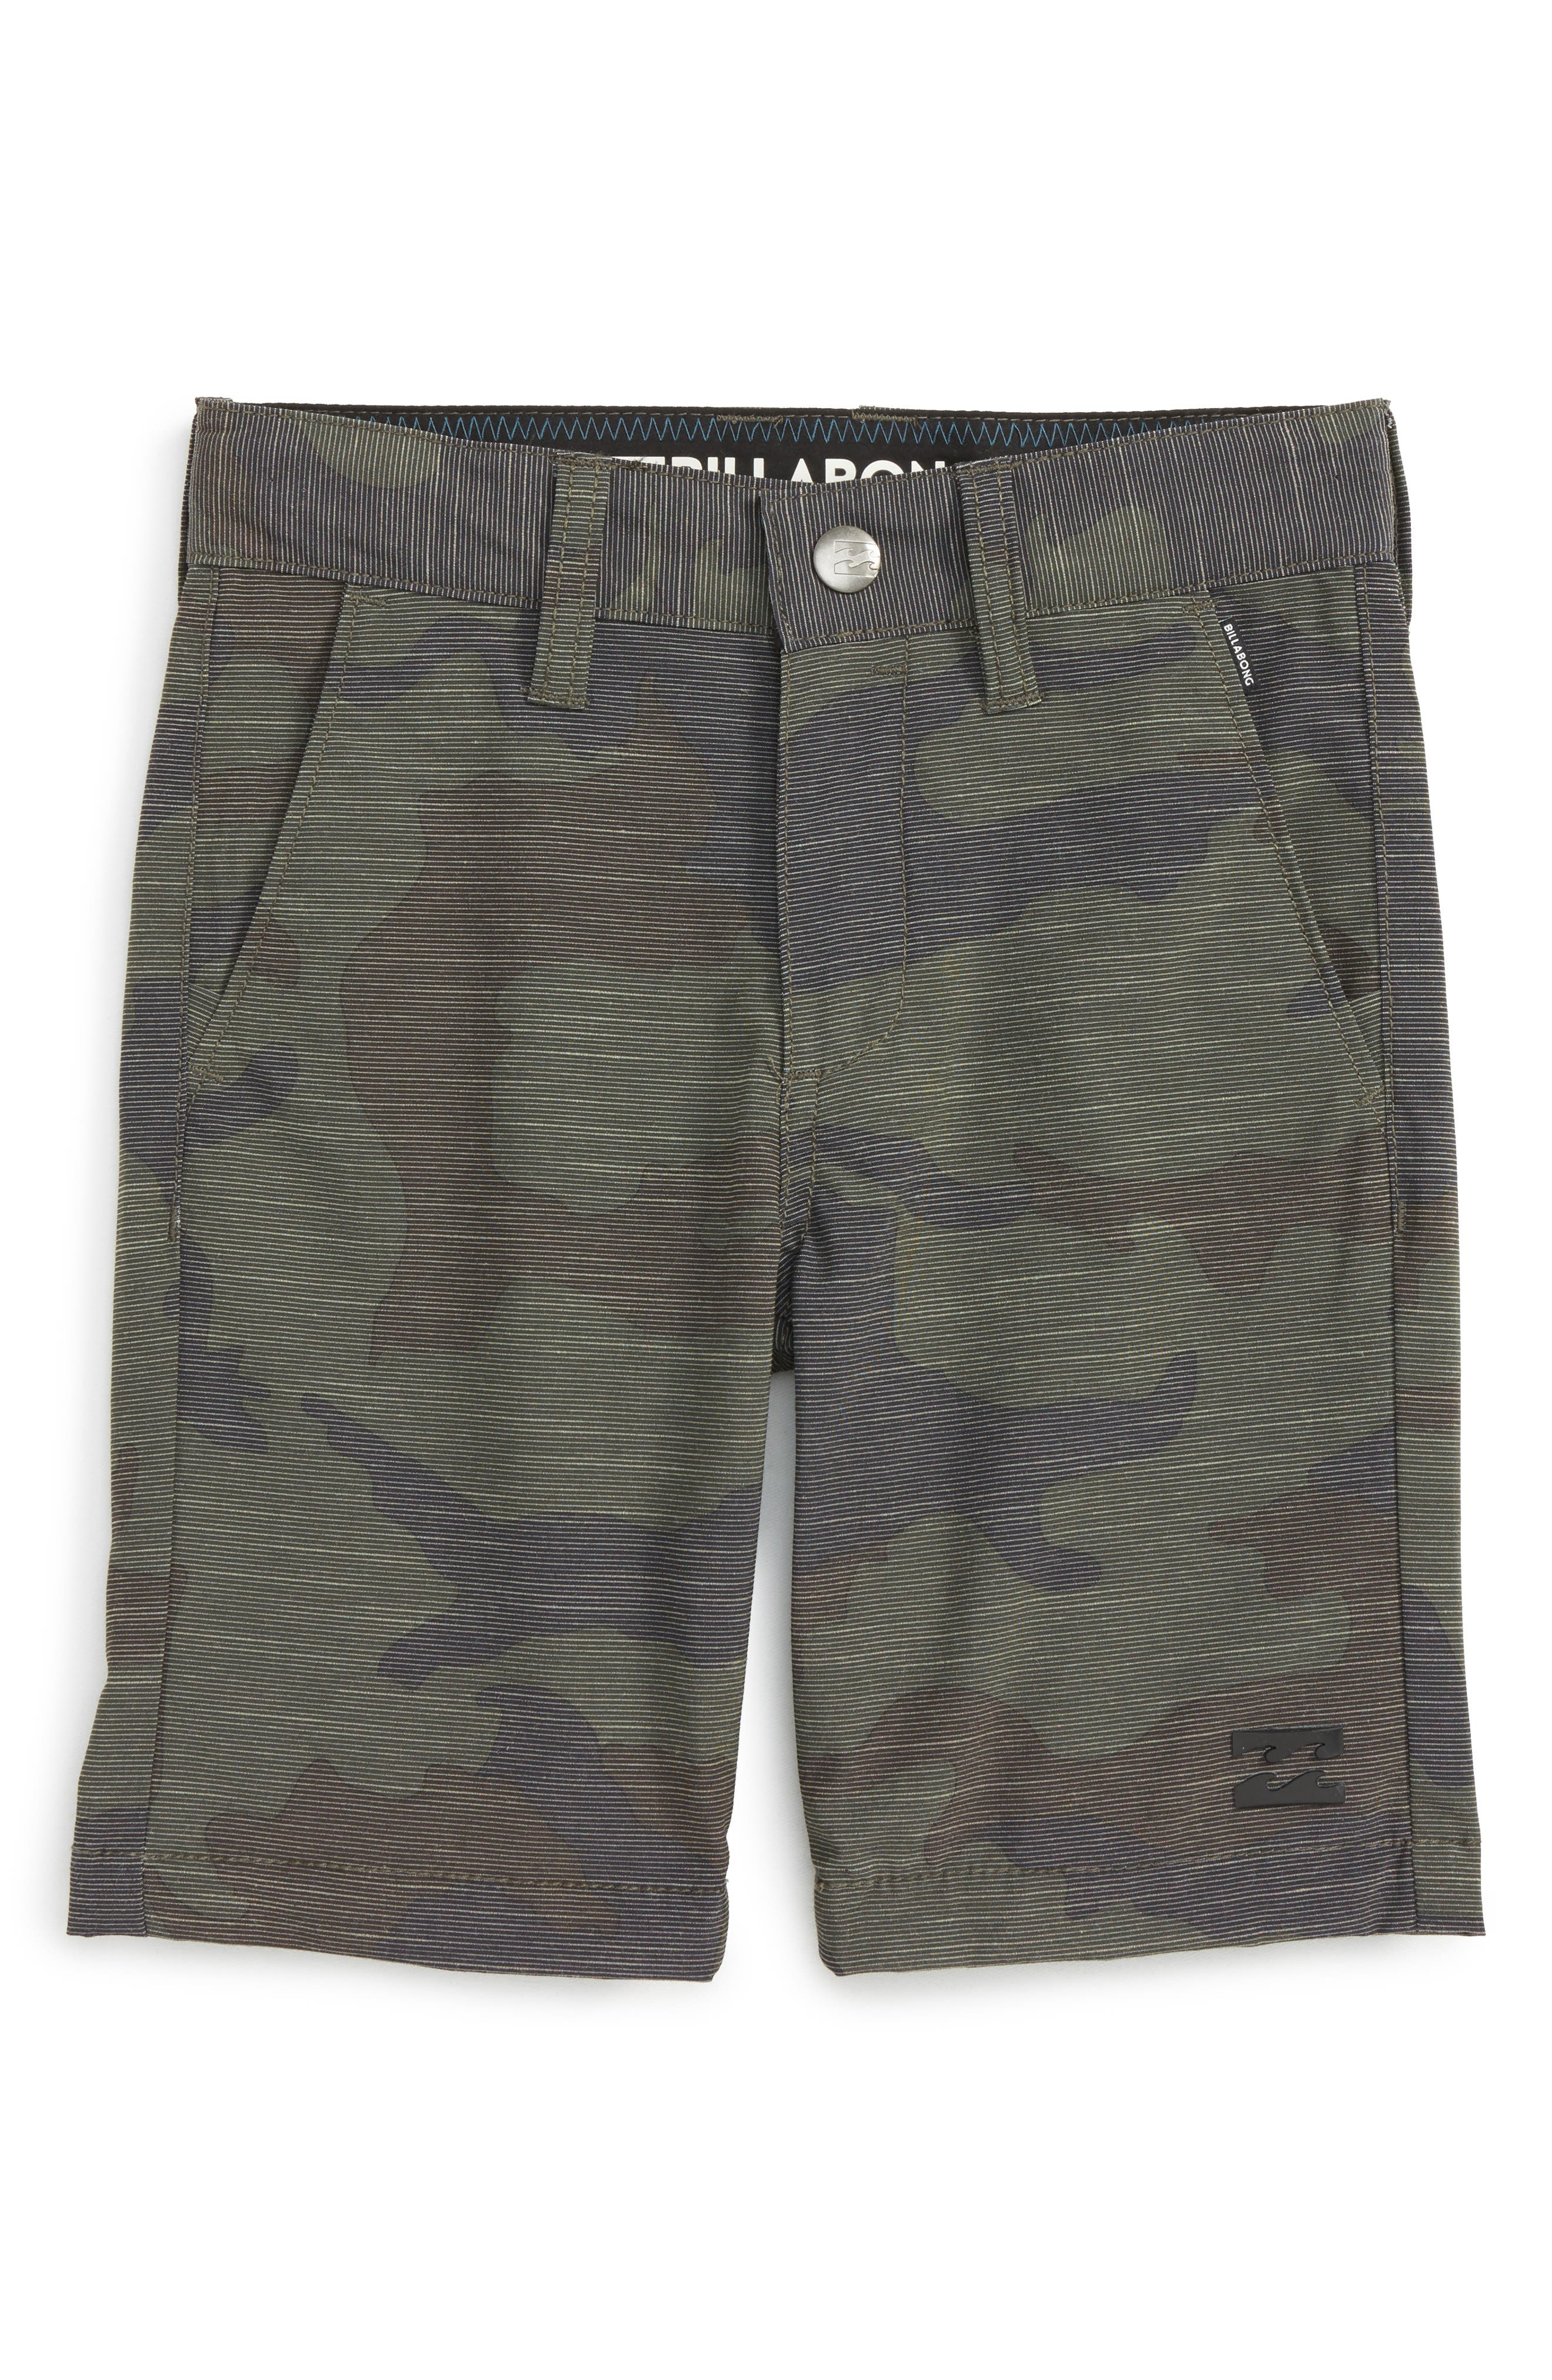 Crossfire X Submersibles Hybrid Shorts,                         Main,                         color, 302